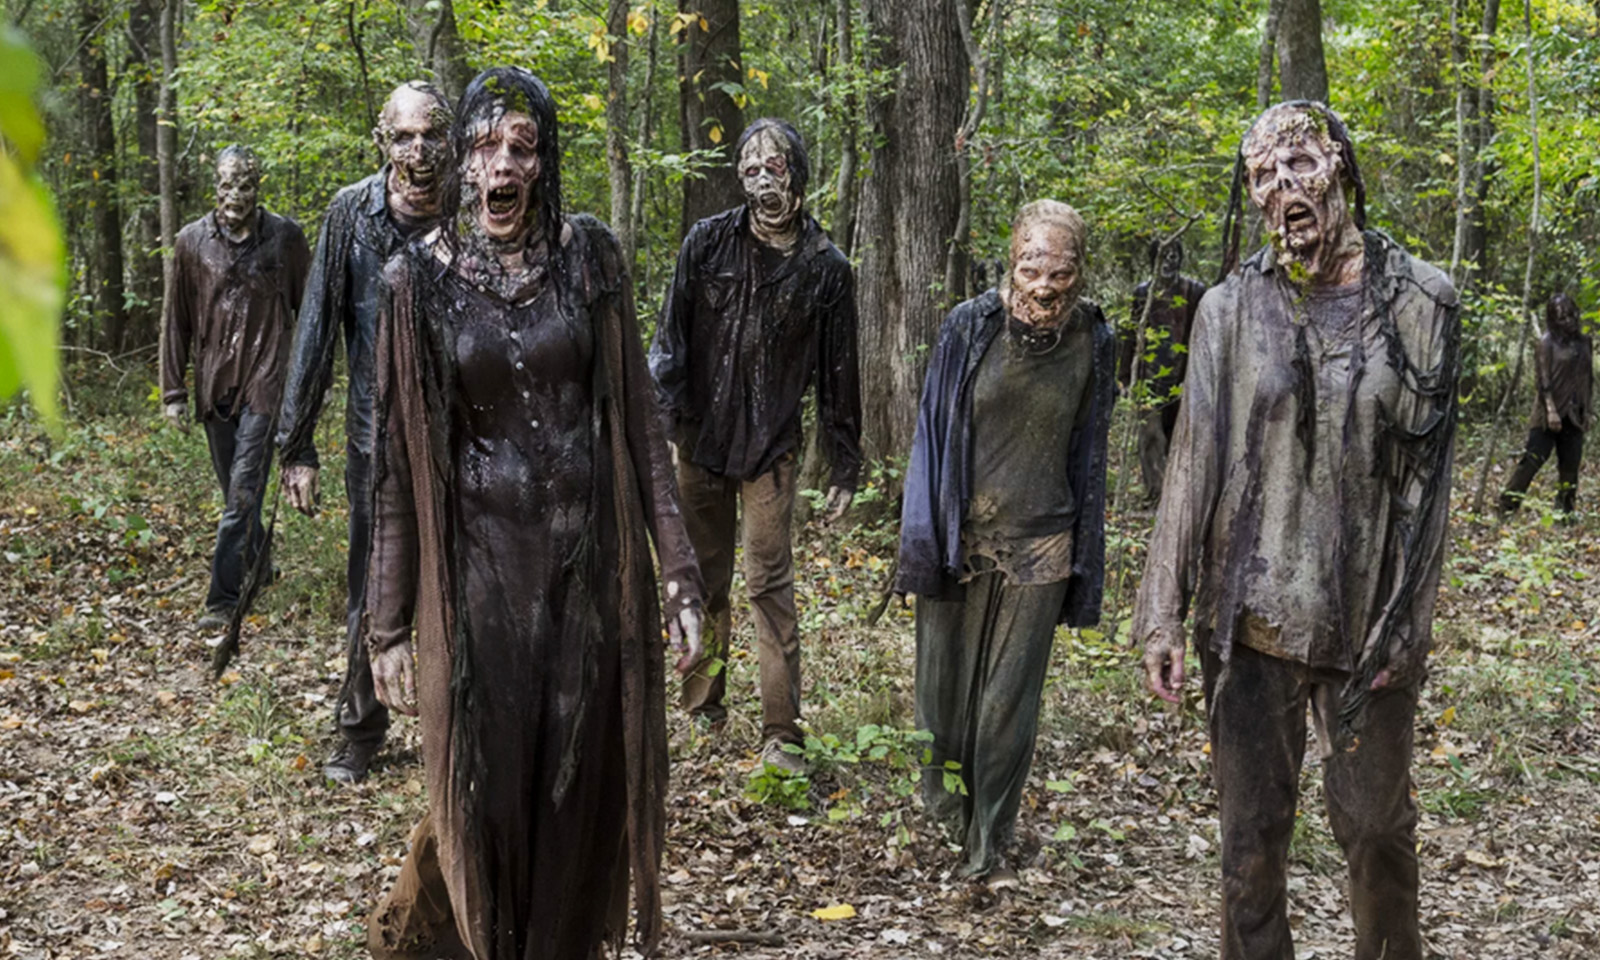 zumbis na floresta em cena de the walking dead